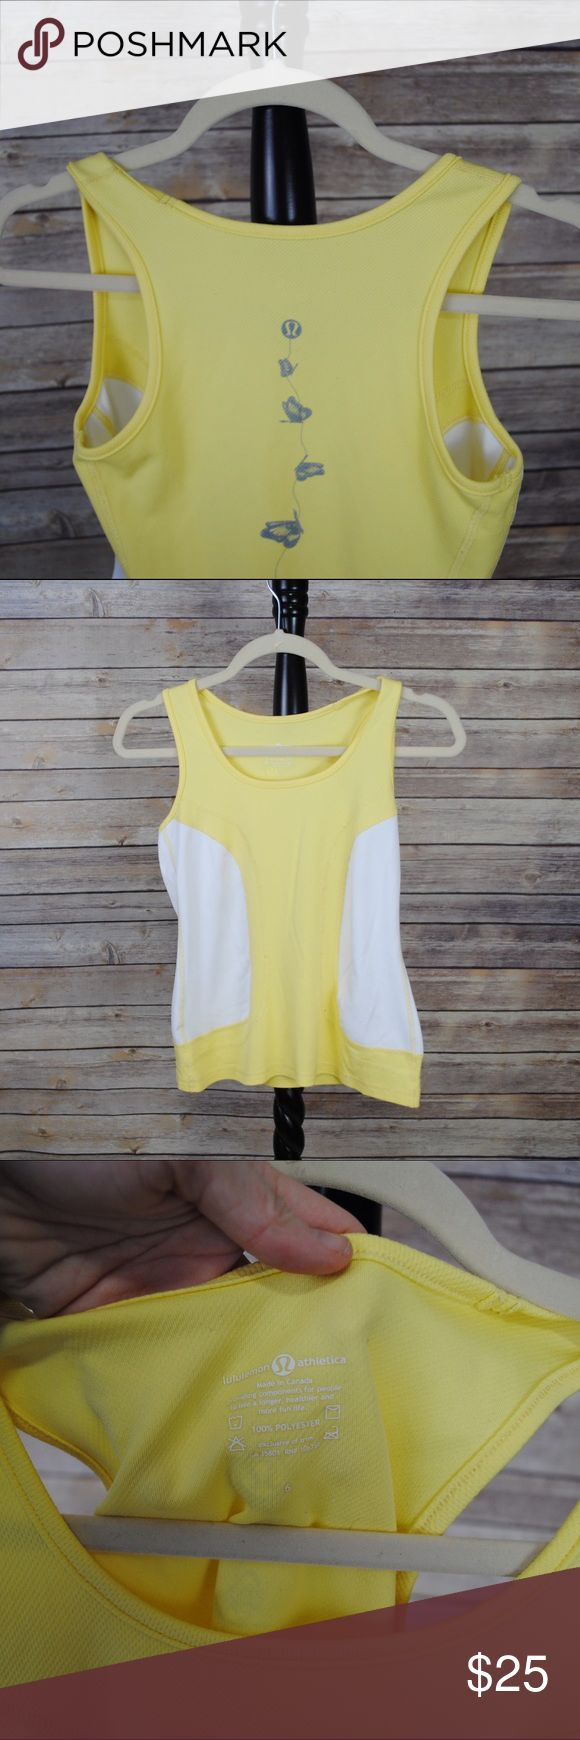 Lululemon Butterfly Yellow Tank Top Vintage Canadian Lululemon. Perfect gently used shape. lululemon athletica Tops Tank Tops